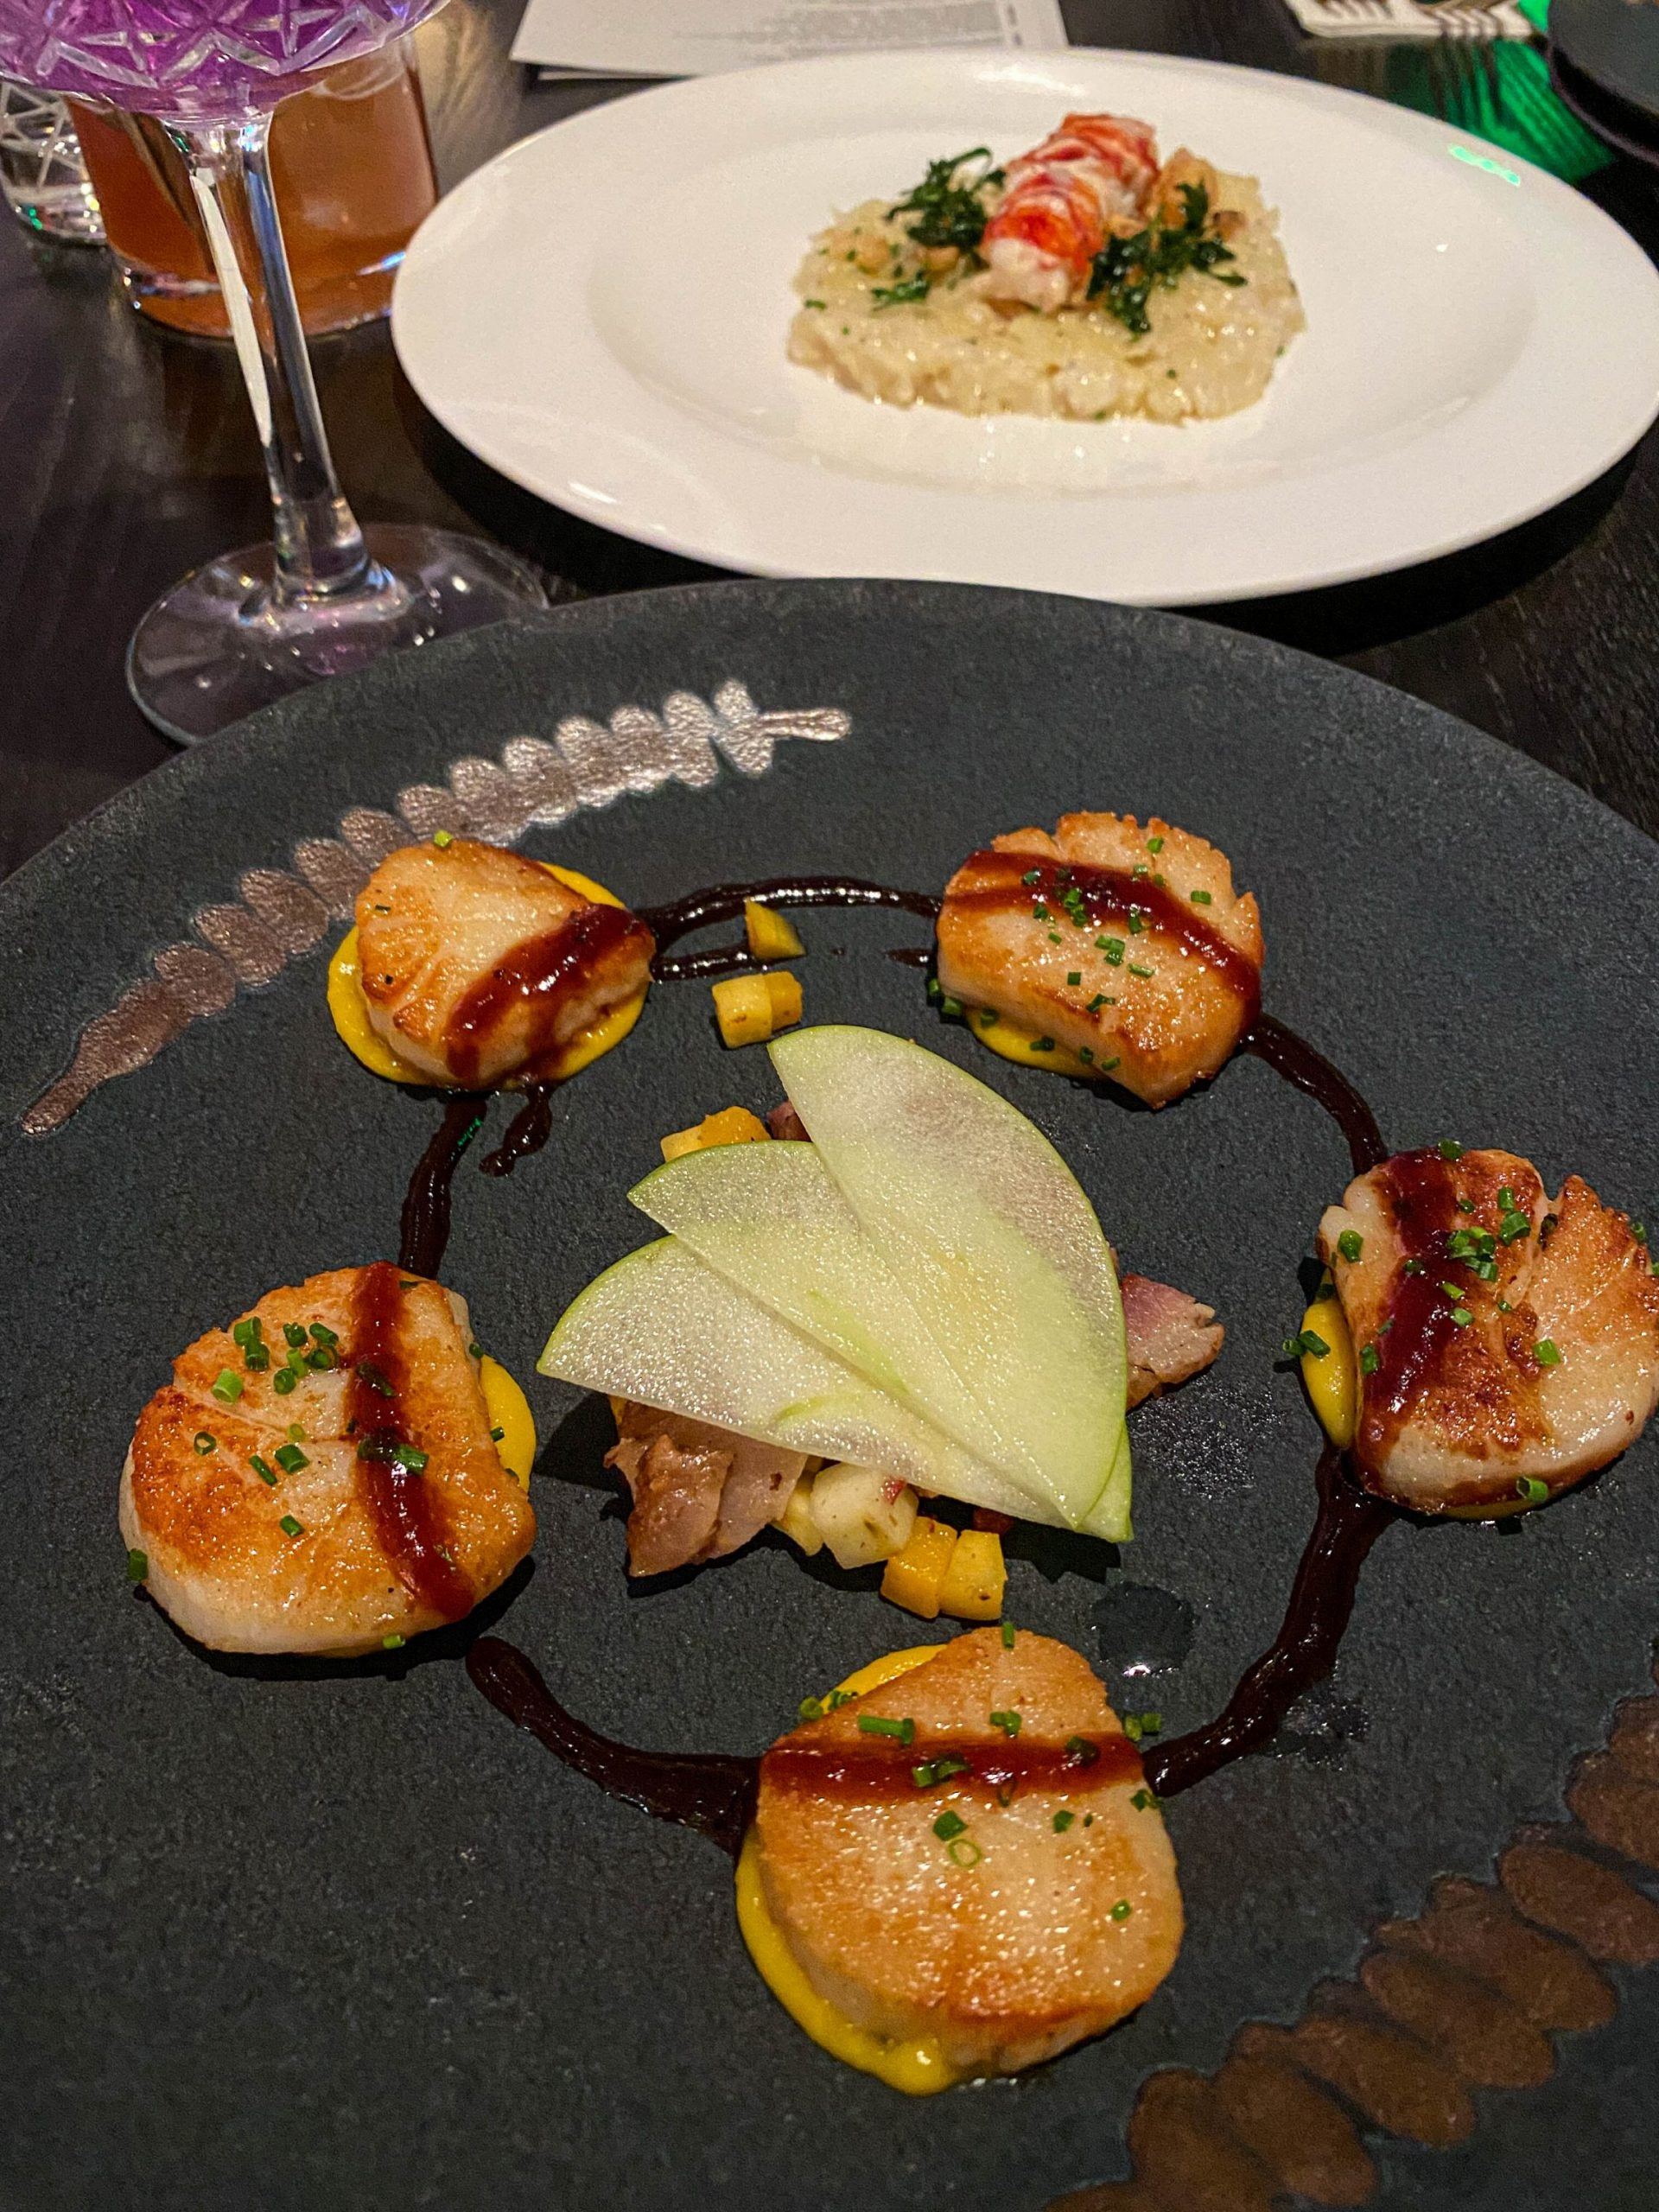 Pan-Seared Scallops with butternut squash puree, braised bacon lardons, pickled green apples